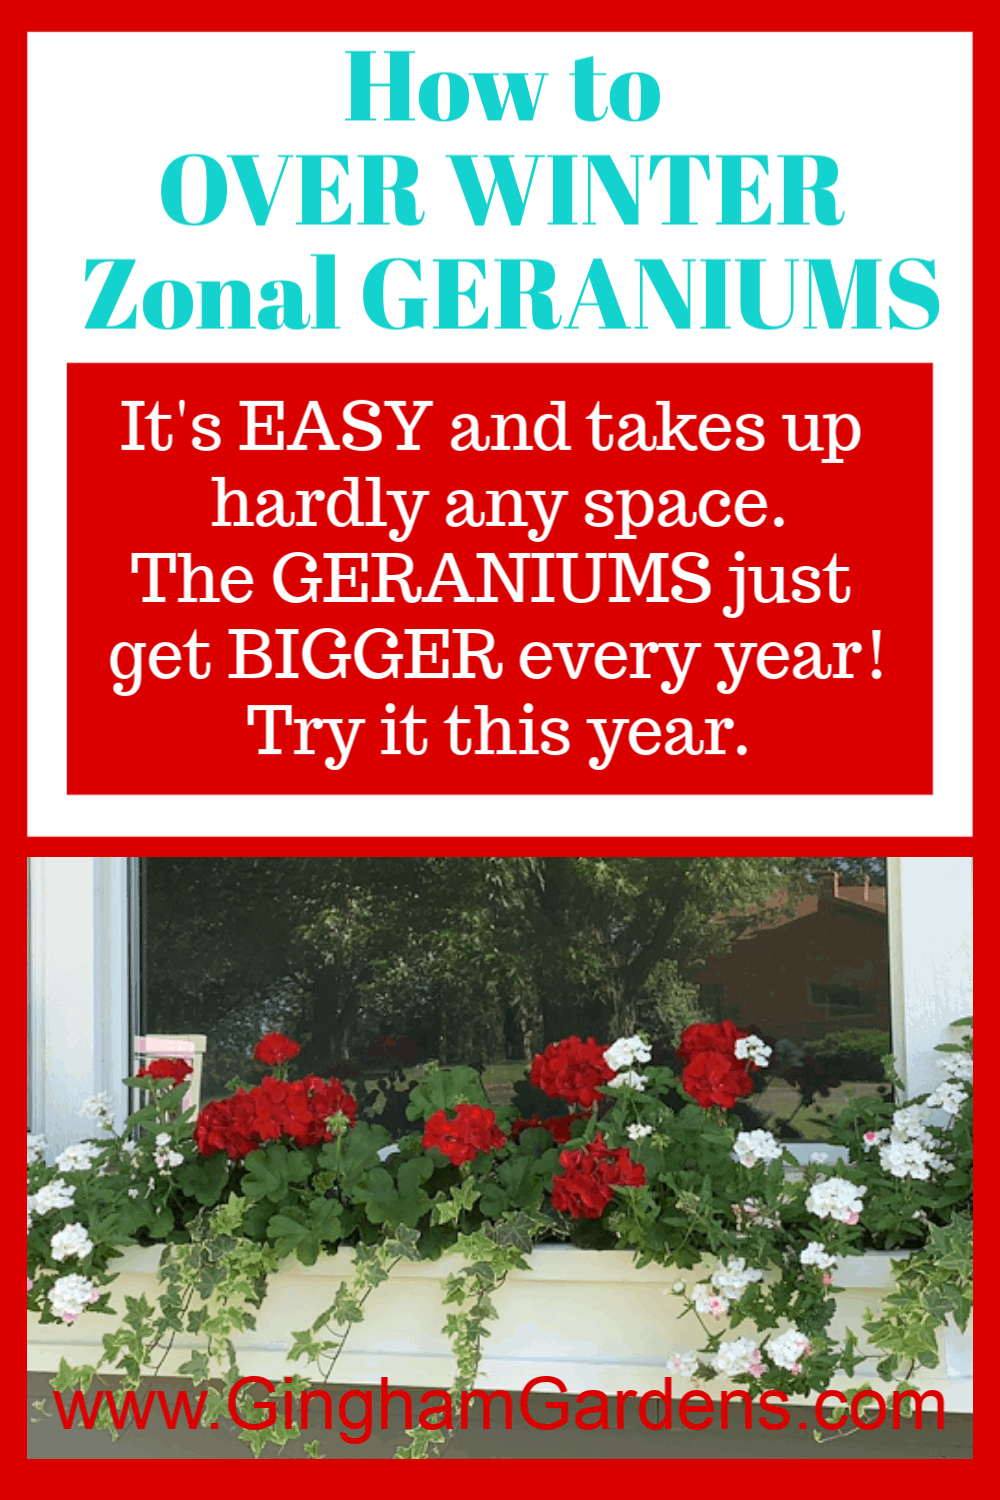 Image of red geraniums in a window box with text overlay - How to Overwinter zonal geraniums